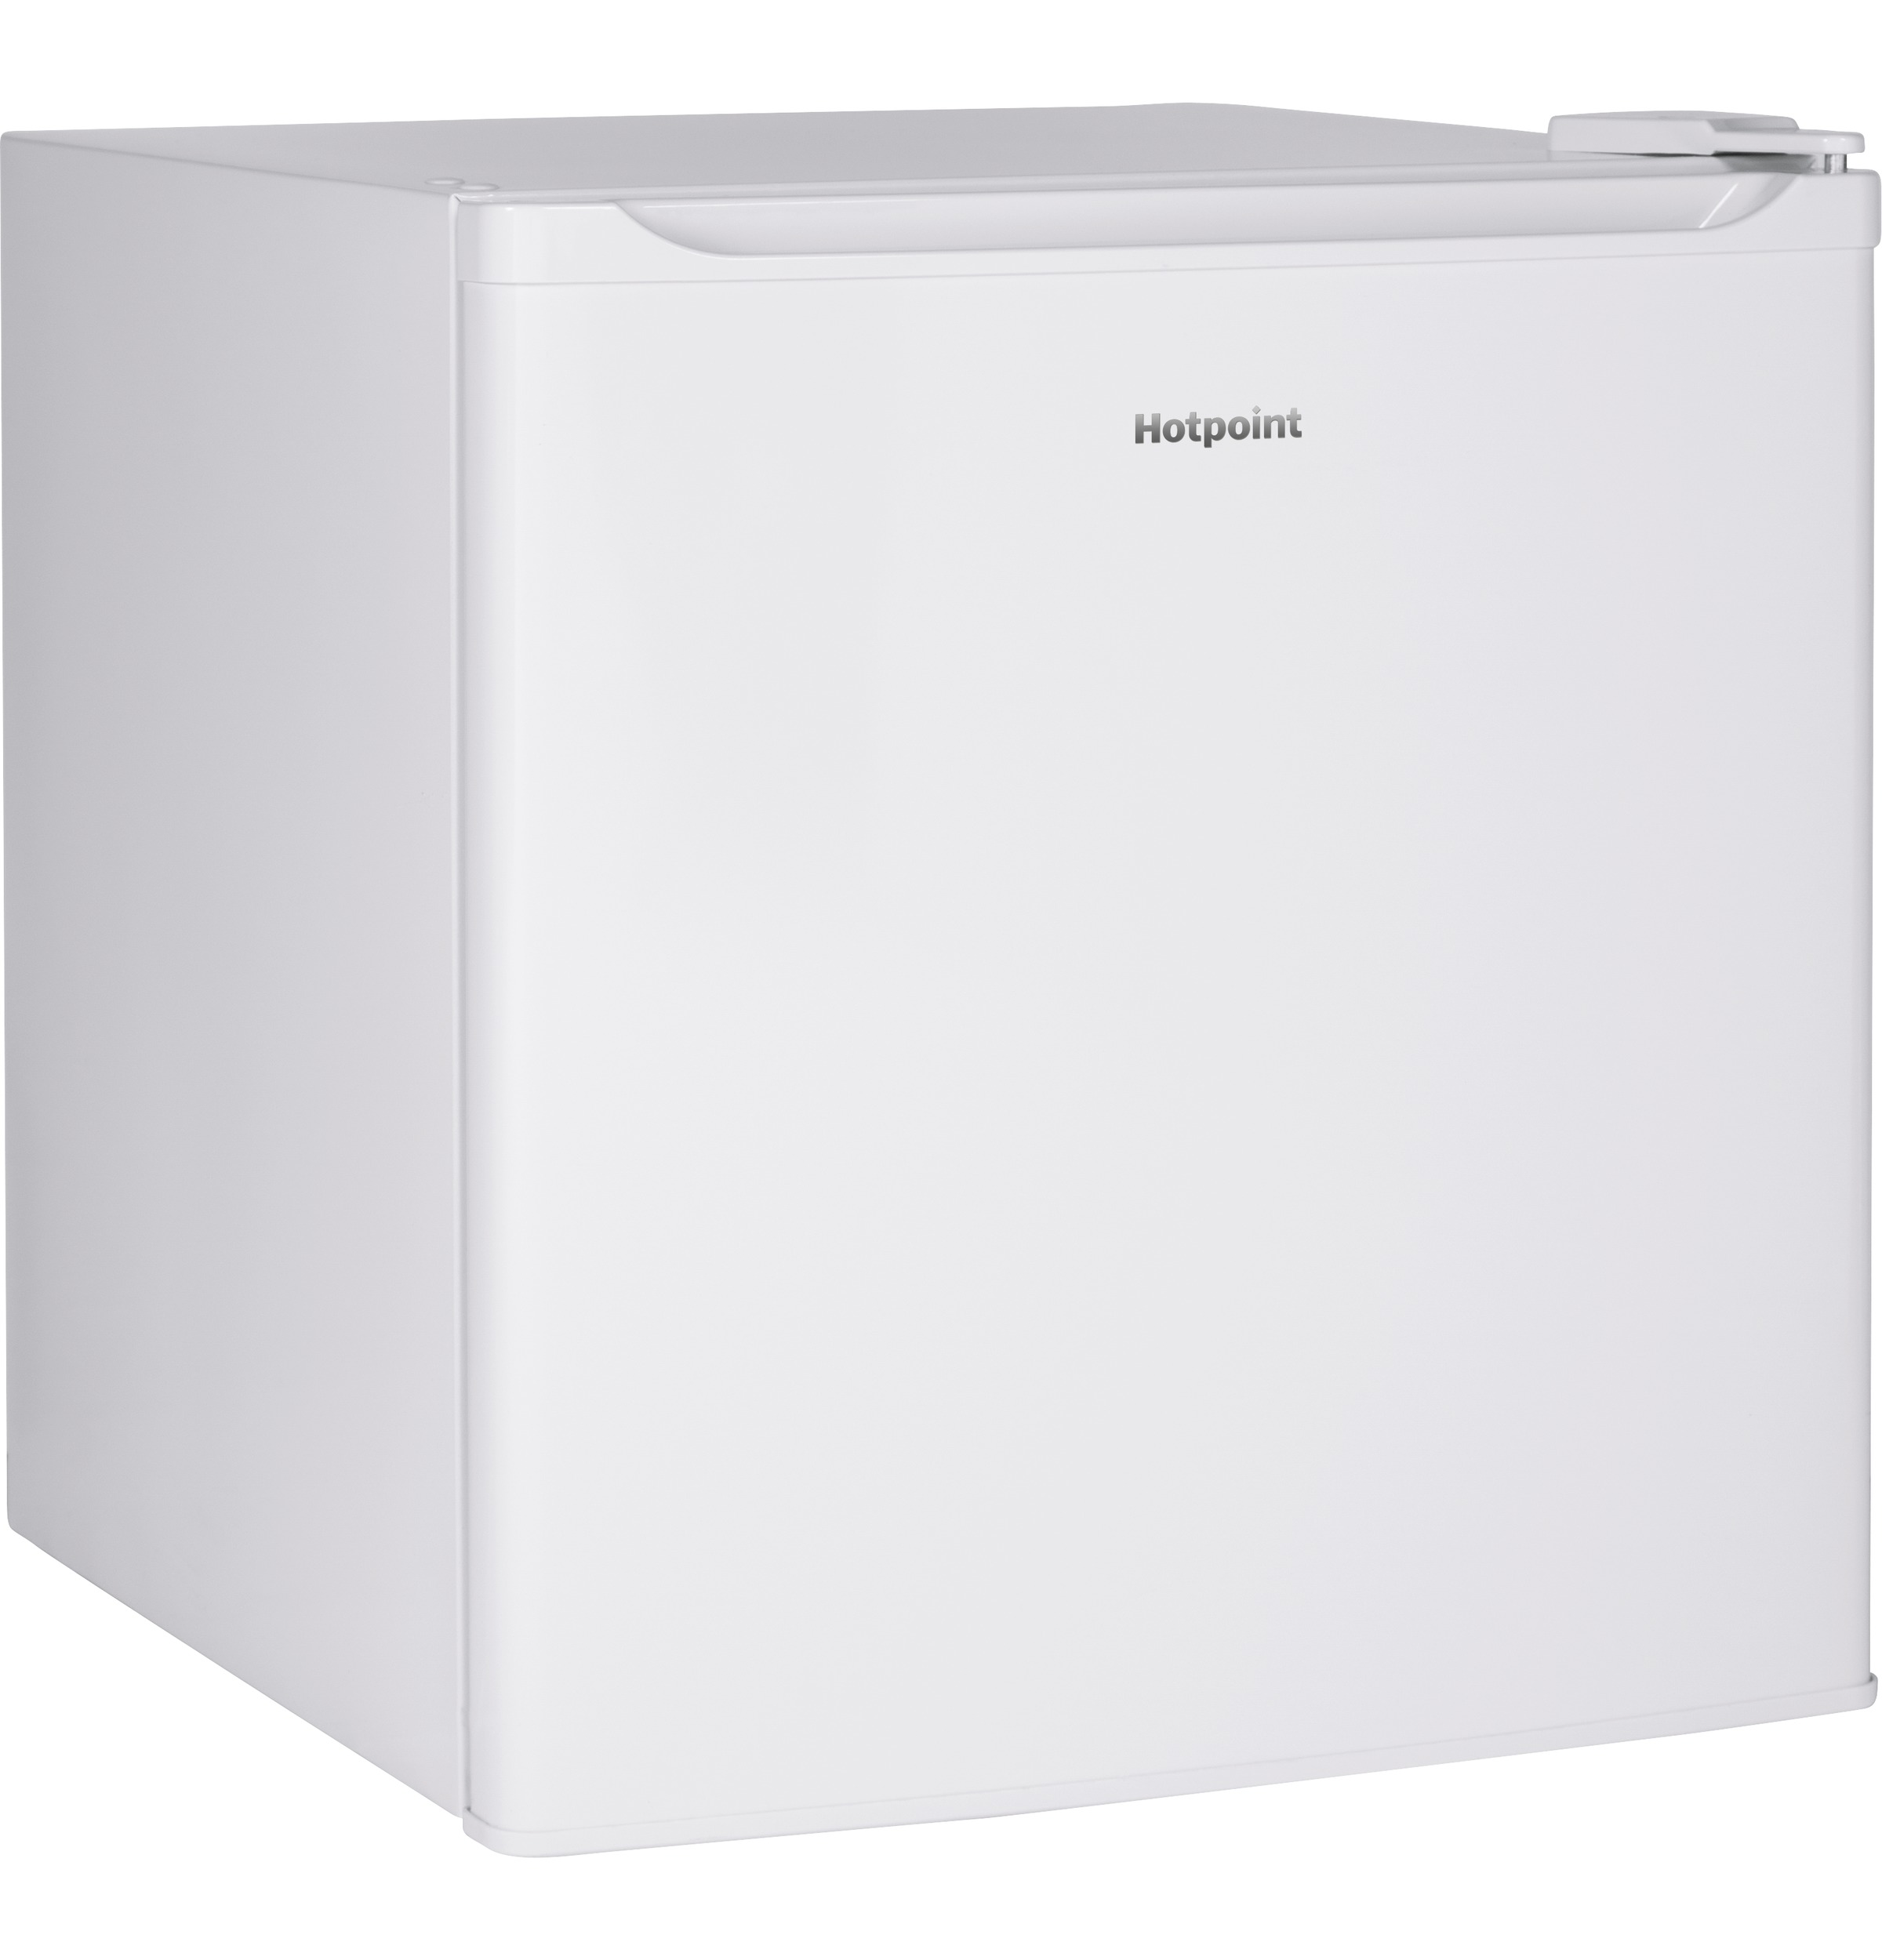 Model: HME02GGMWW | Hotpoint® 1.7 cu. ft. ENERGY STAR® Qualified Compact Refrigerator